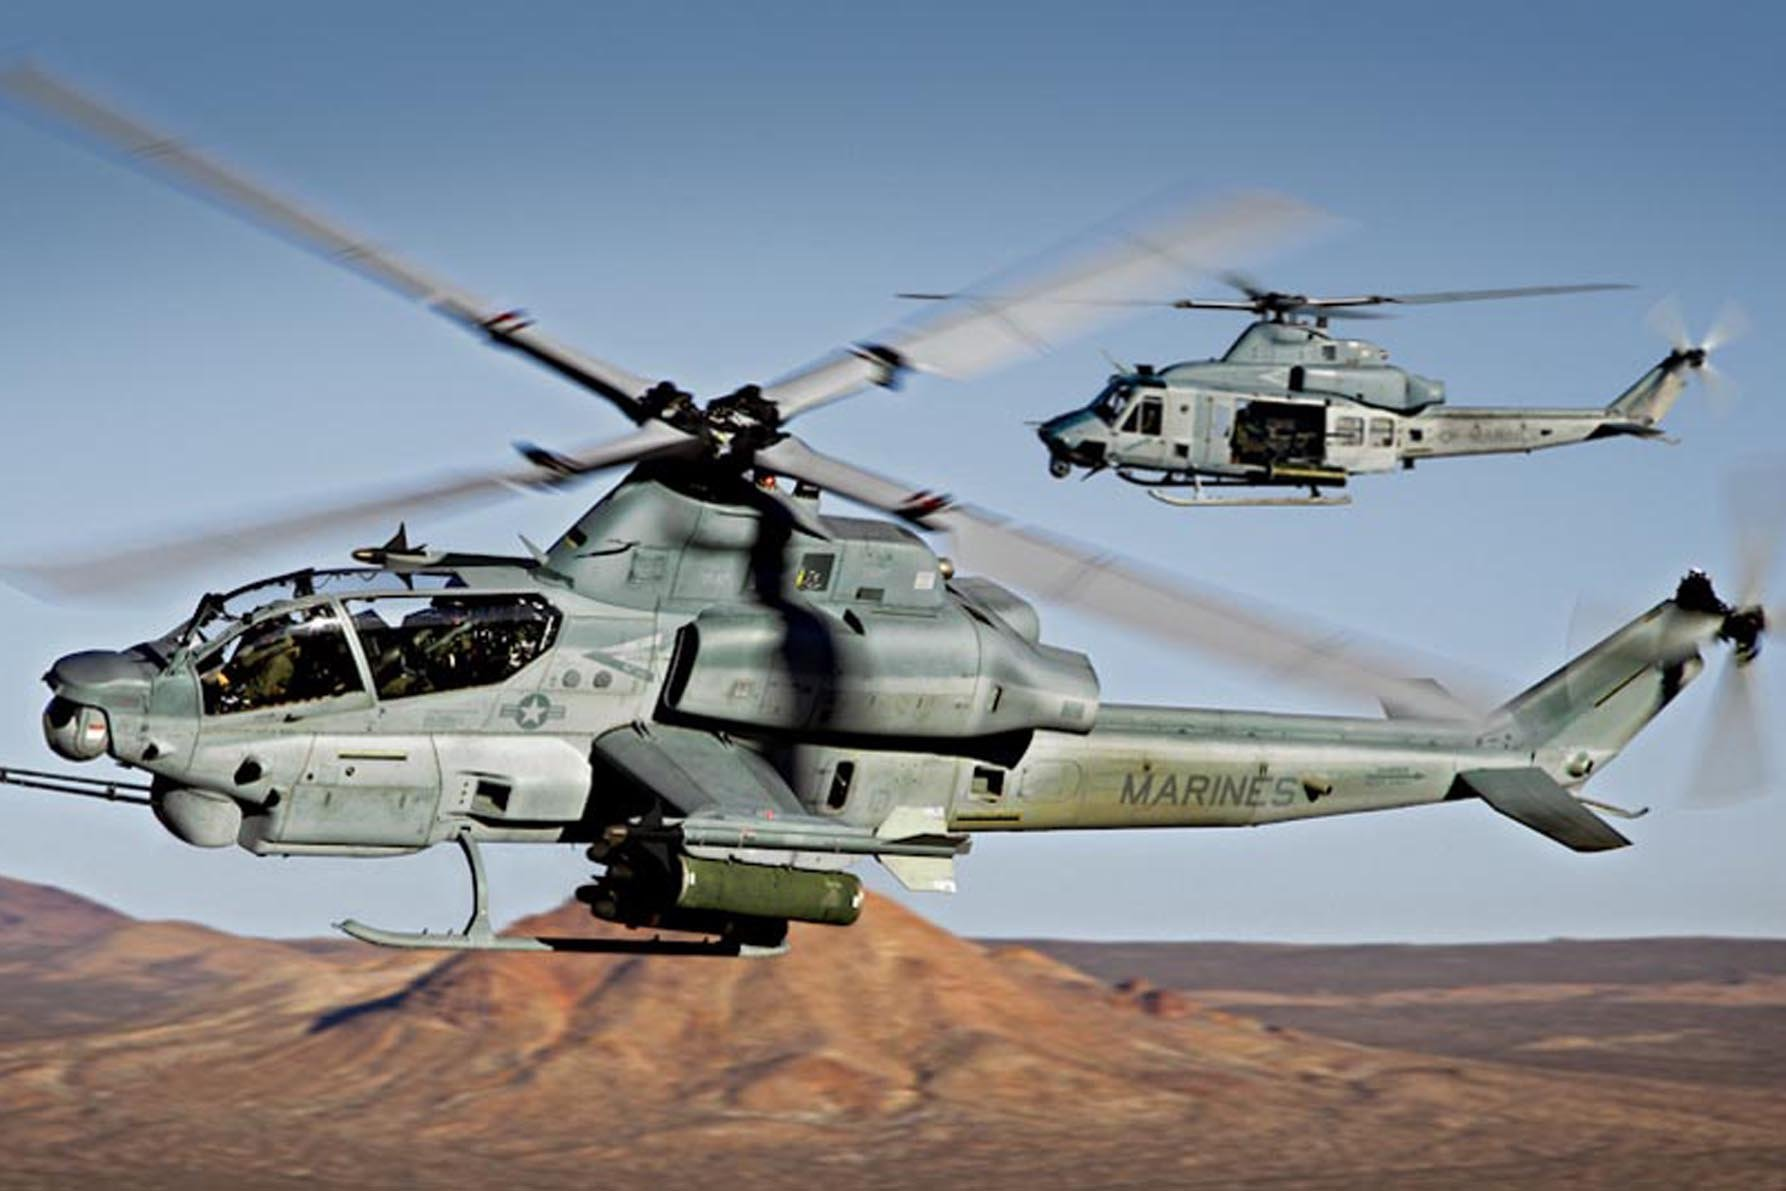 10 AH-1W Super Cobra most powerful military helicopters